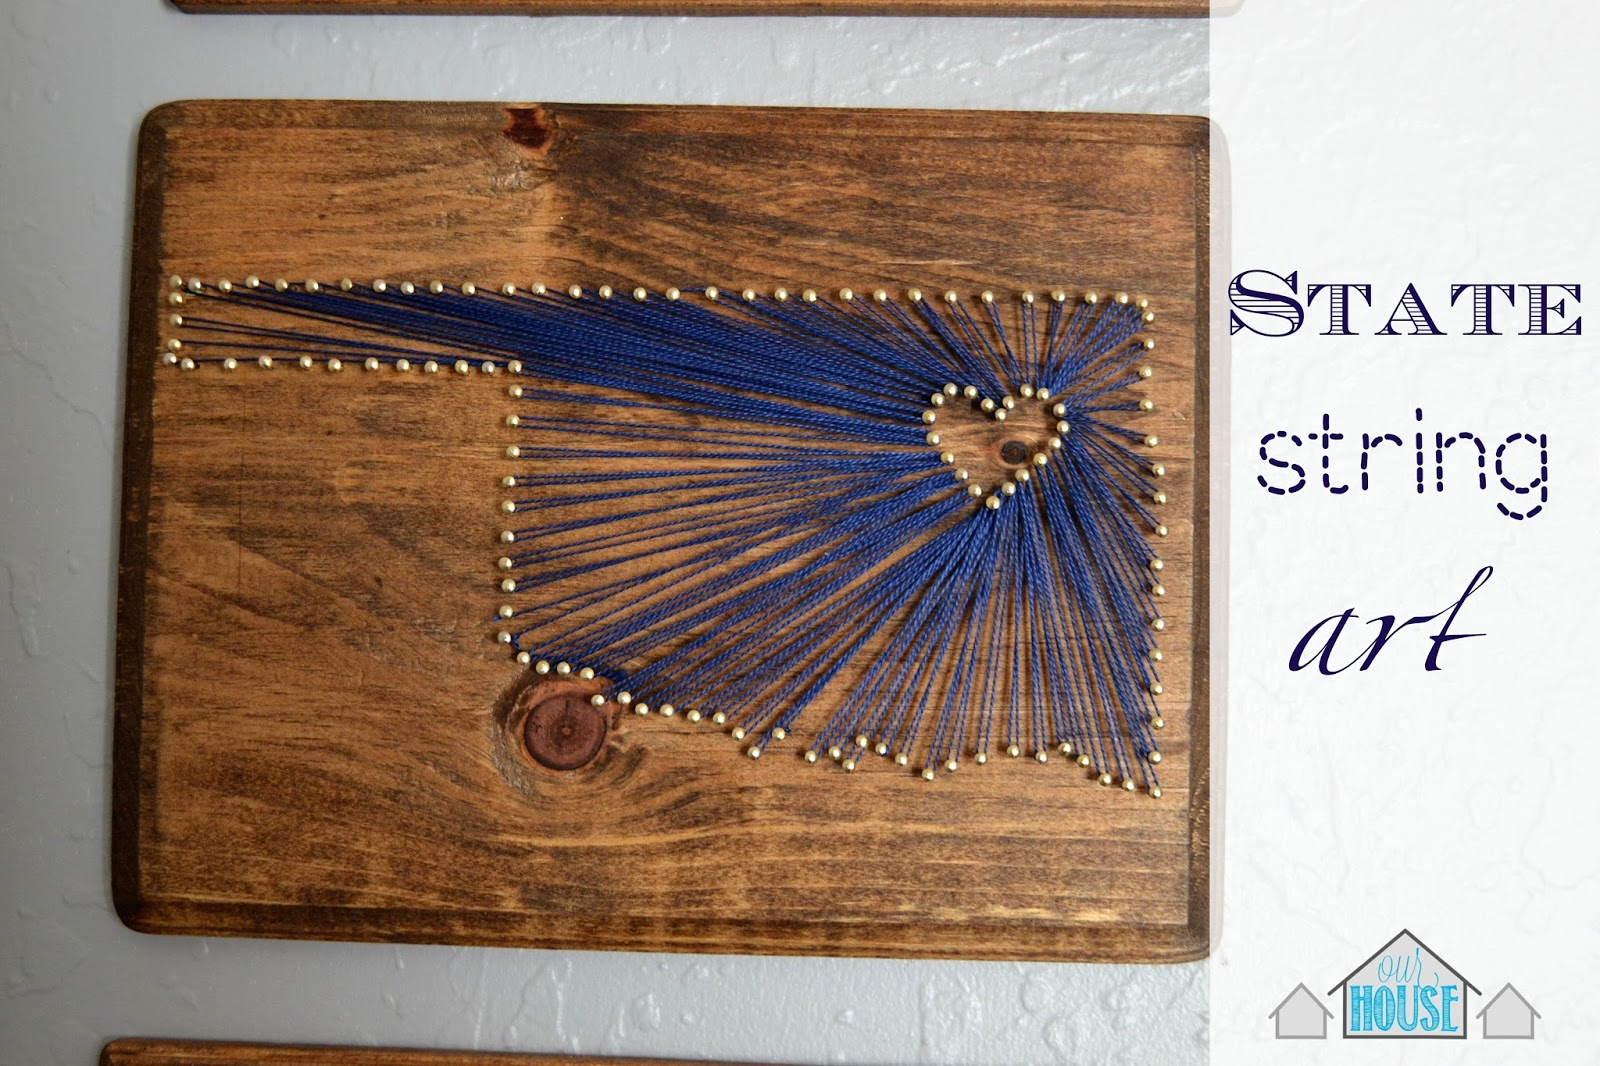 Nail Art Ideas state nail string art : Our House in the Middle of Our Street: State String Art